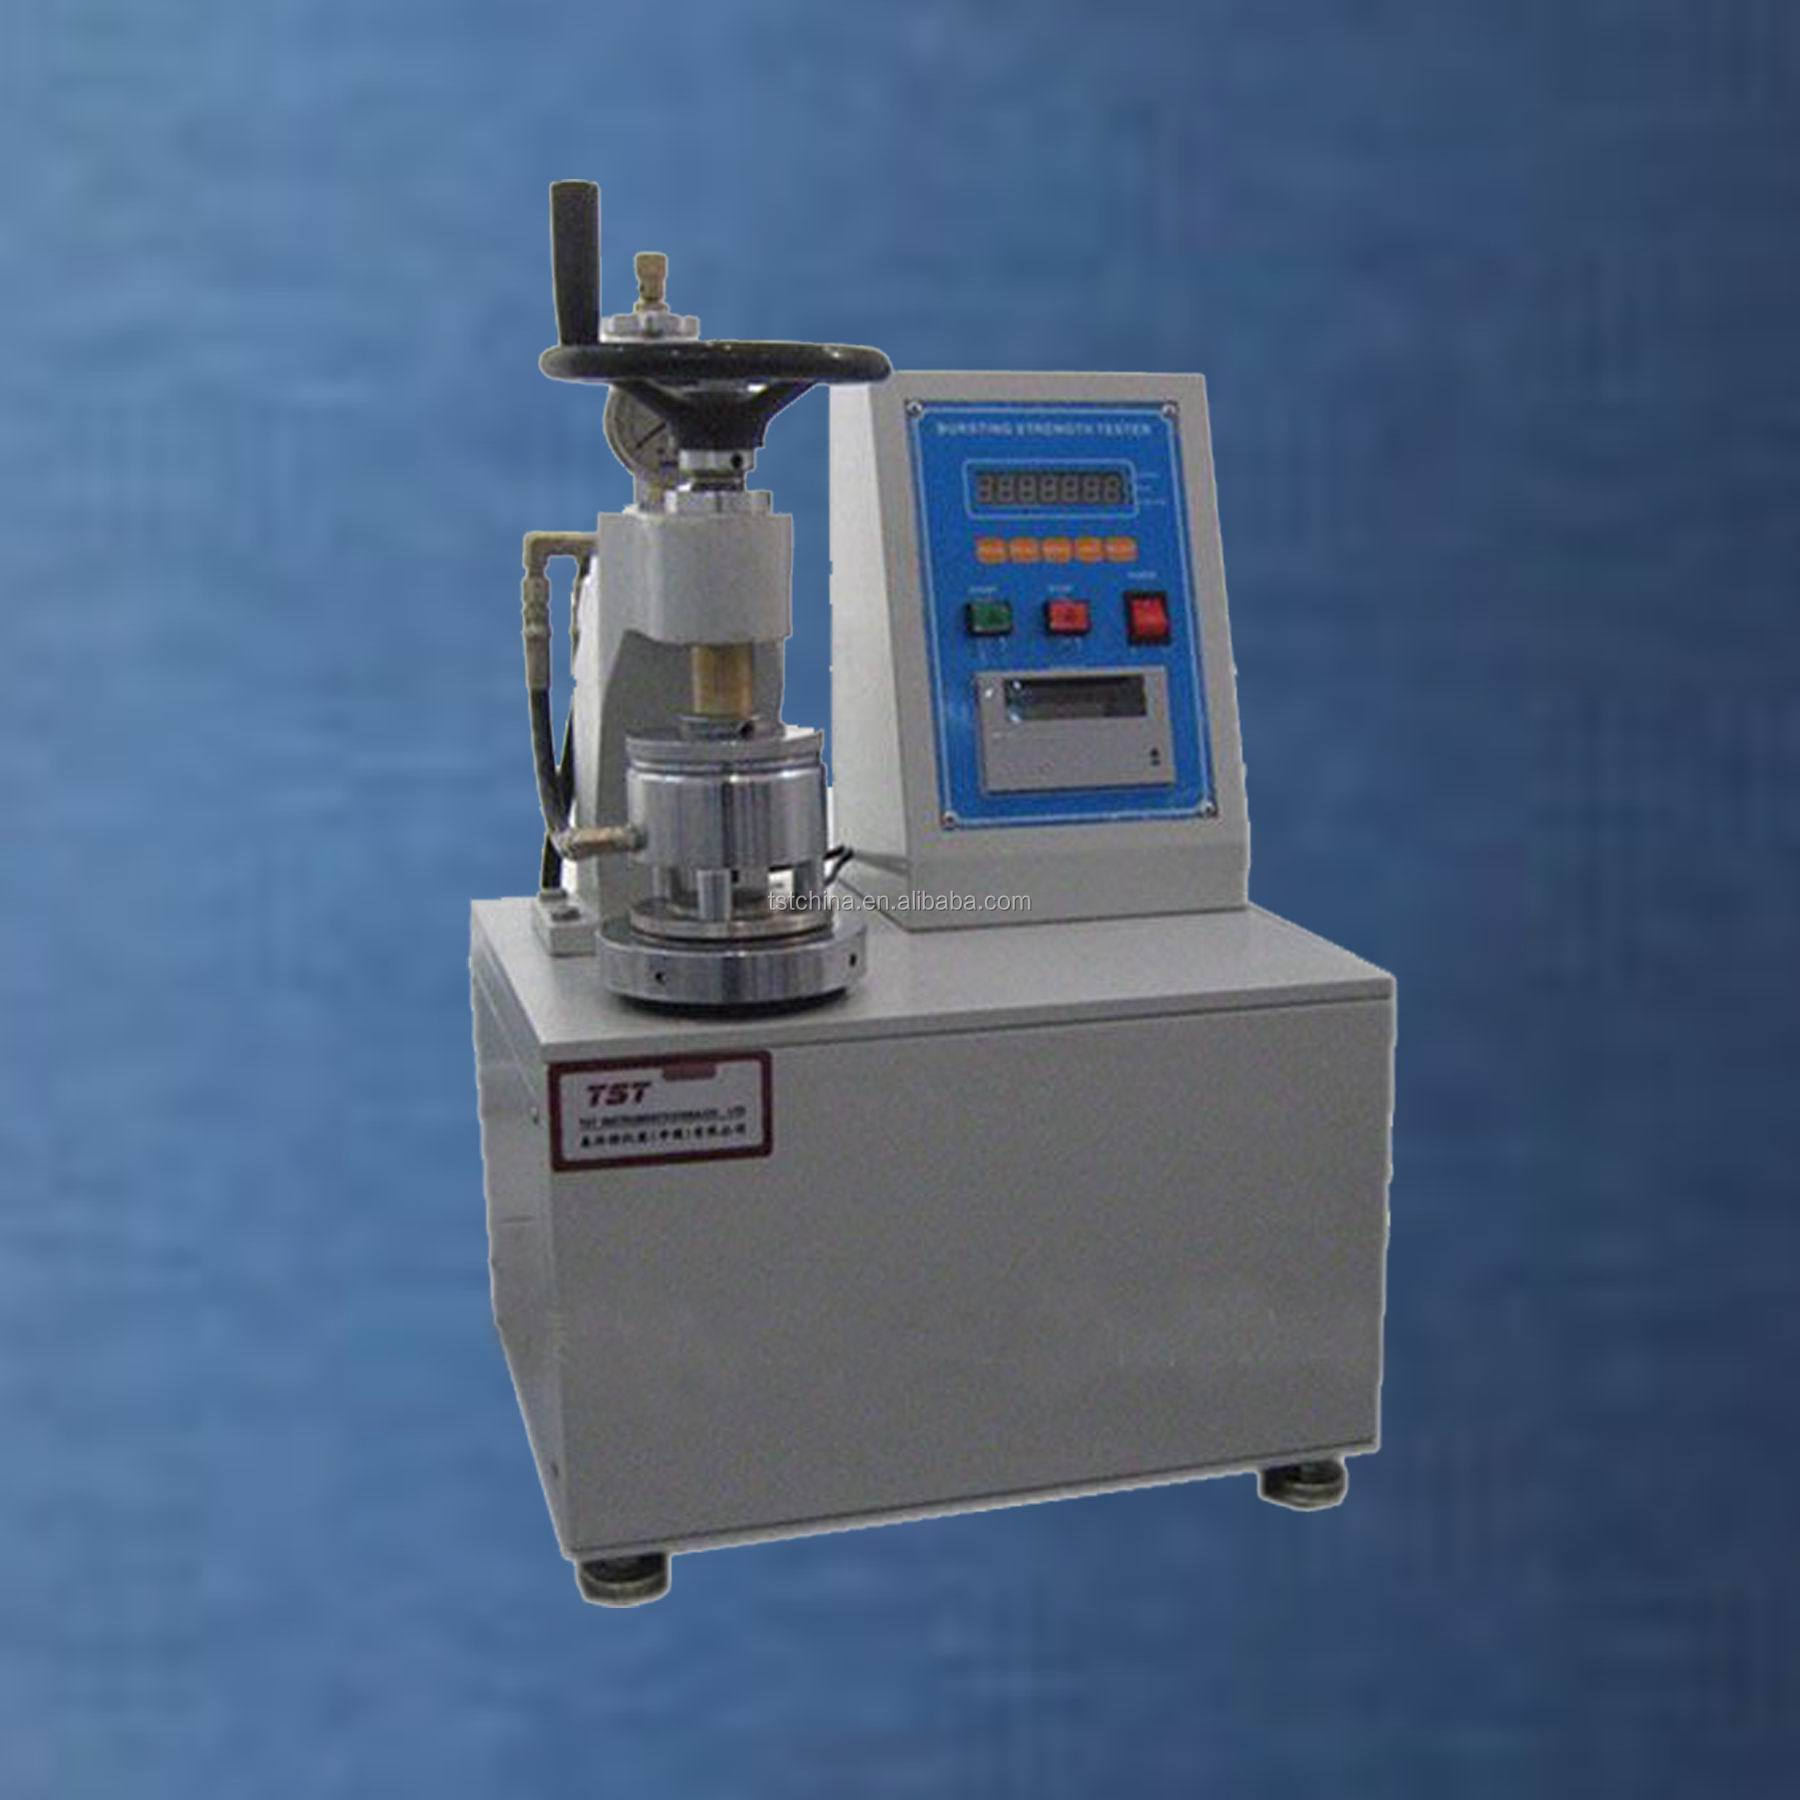 Automatic bursting pressure strength tester-material mechanical testing